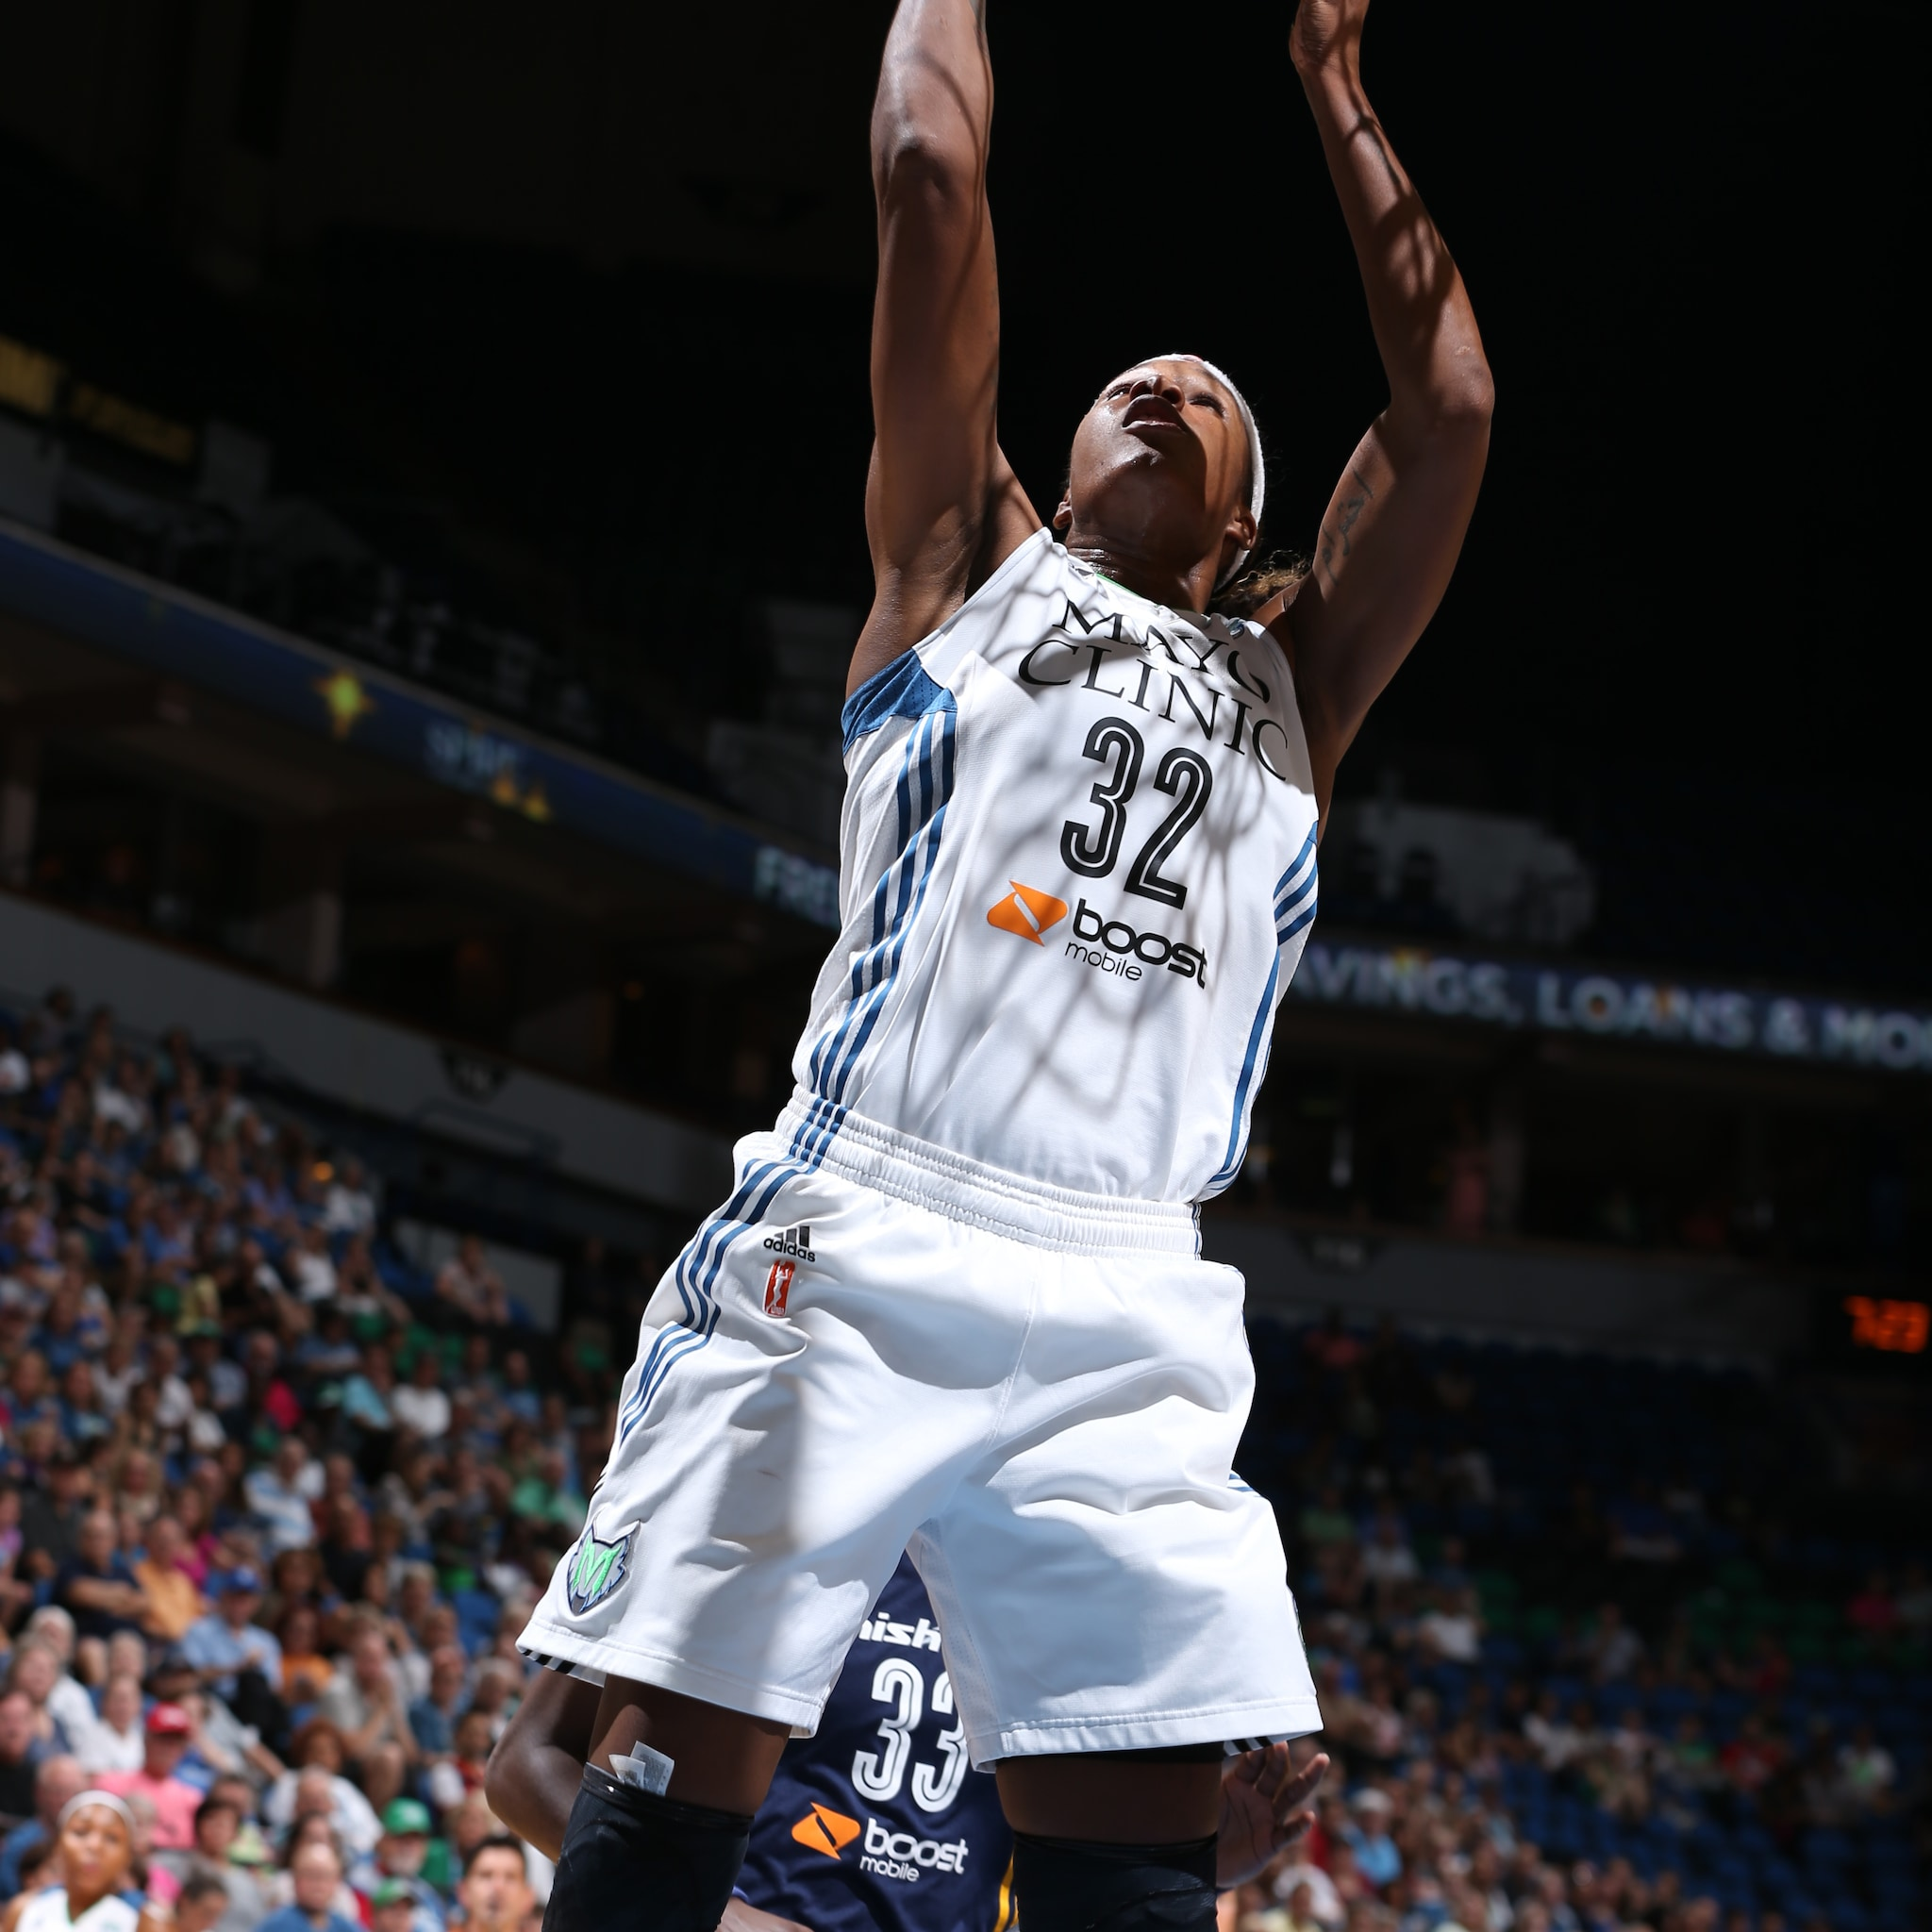 The Lynx frontcourt was fantastic on Friday night and Rebekkah Brunson was a big part of that. Brunson finished the night with 14 points, 11 rebounds and one steal.